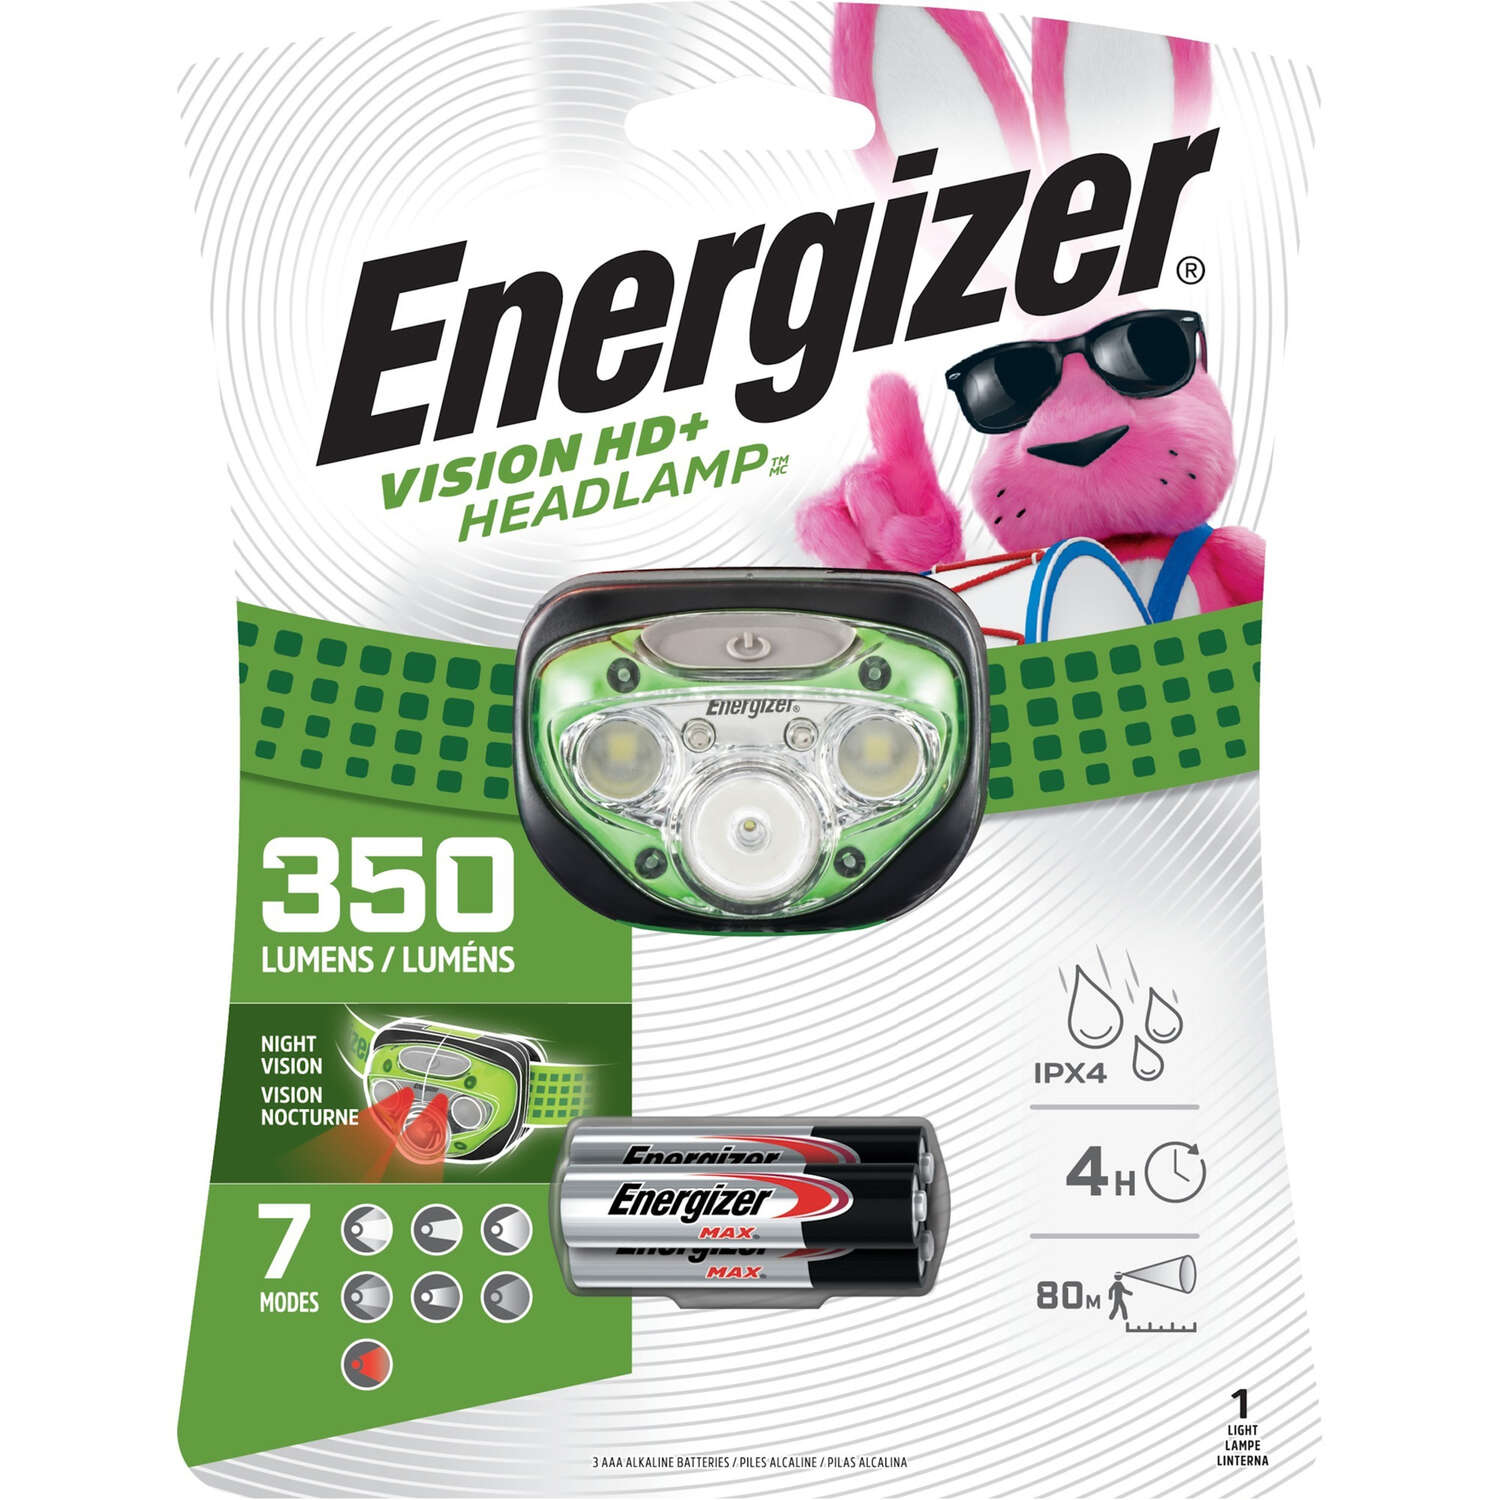 Energizer  Vision HD  250 lumens Green  LED  Headlight  AAA Battery